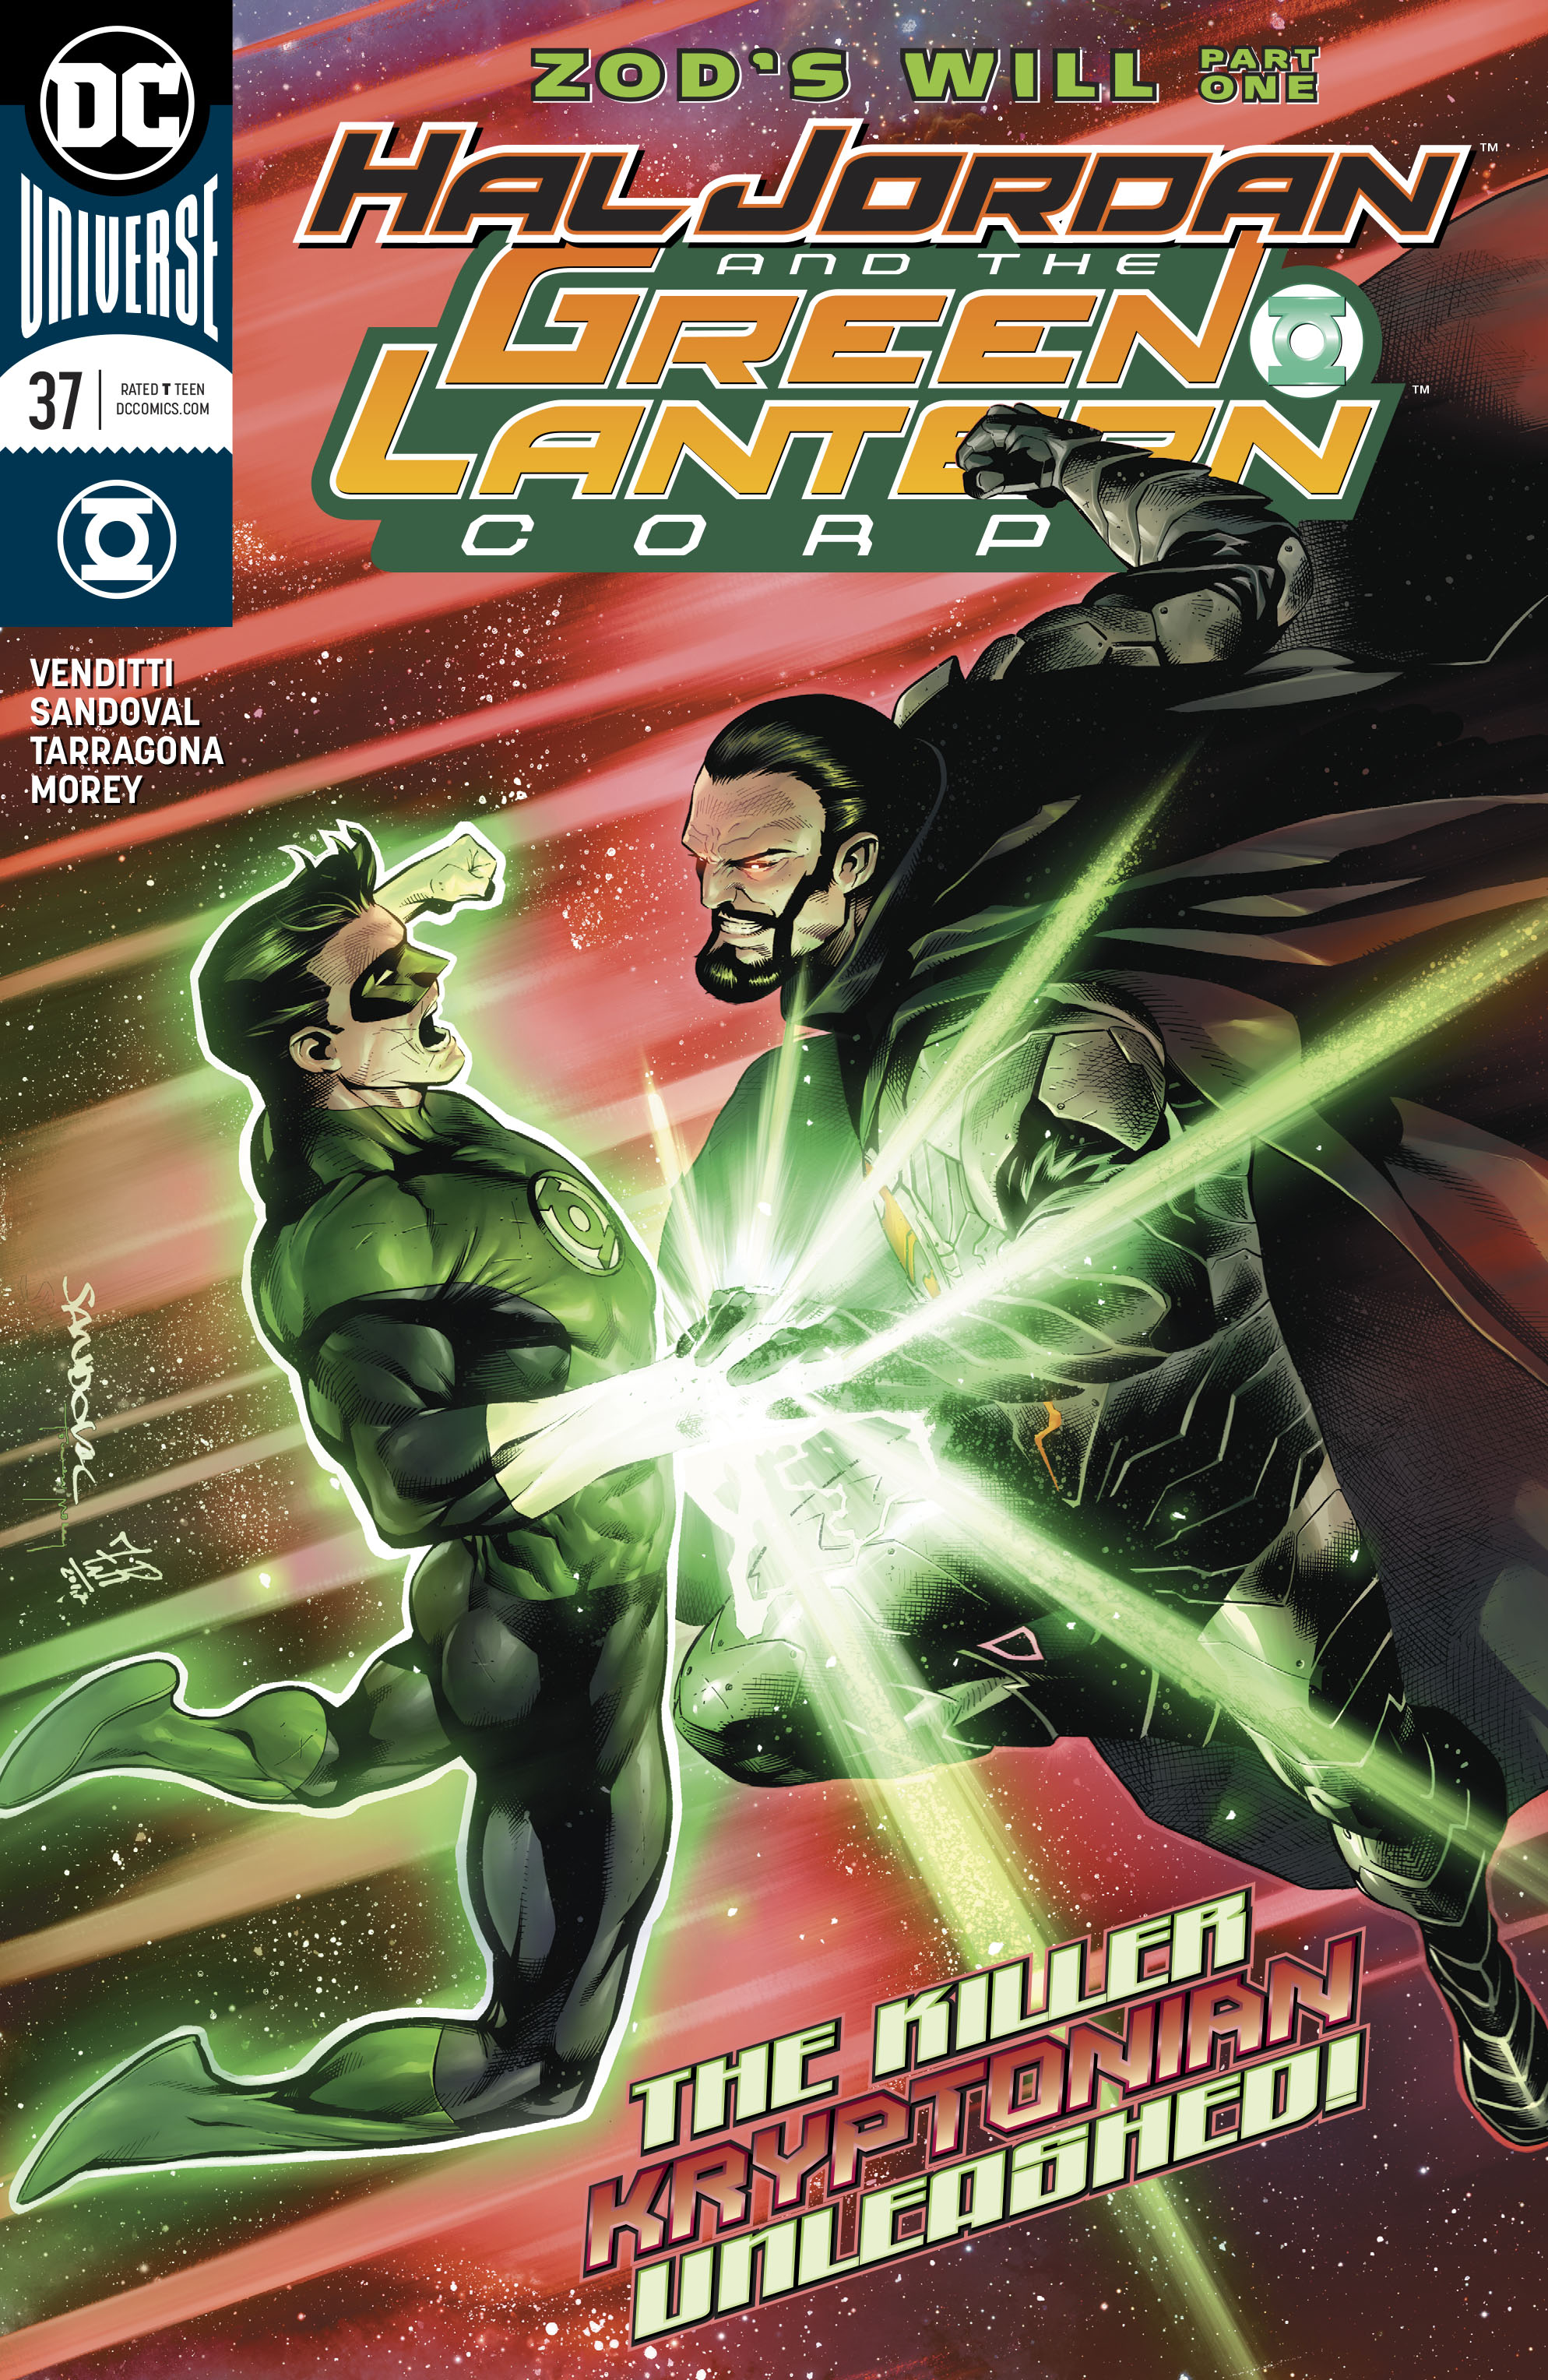 HAL JORDAN AND THE GREEN LANTERN CORPS #37